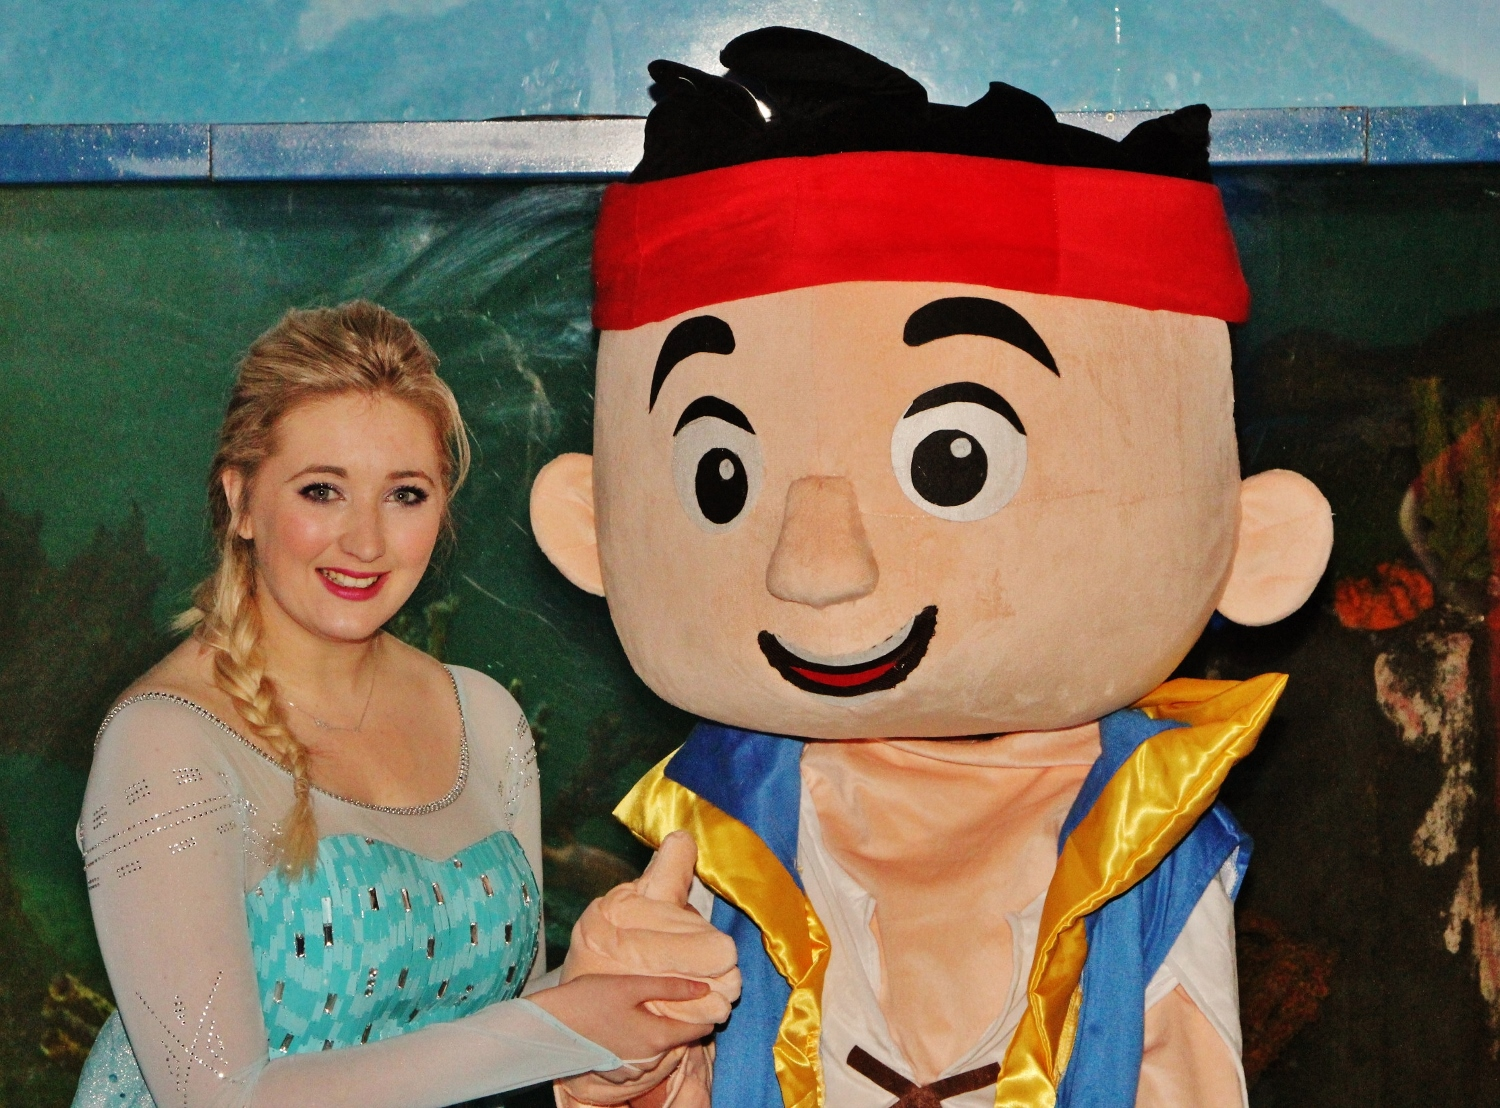 Pirate Jake with Princess Elsa at Deep Sea World edinburgh